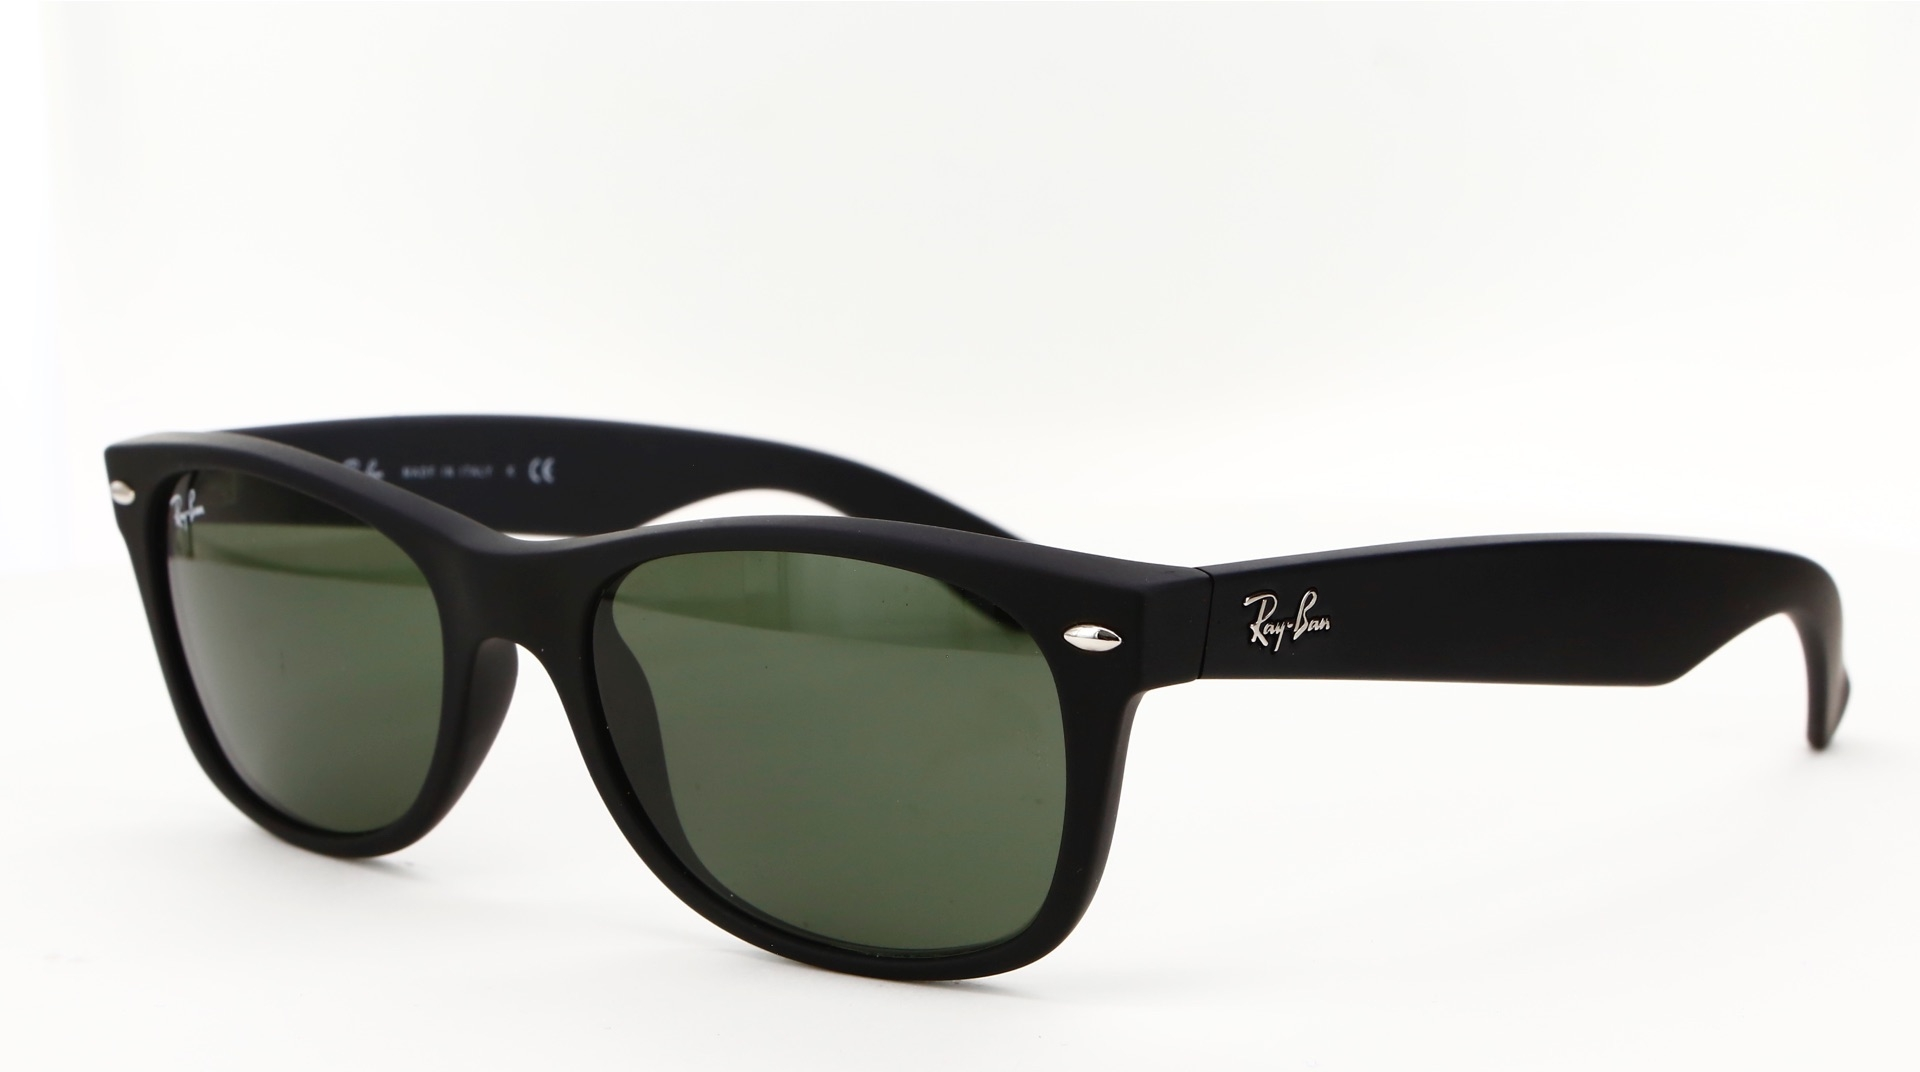 Ray-Ban - ref: 62790